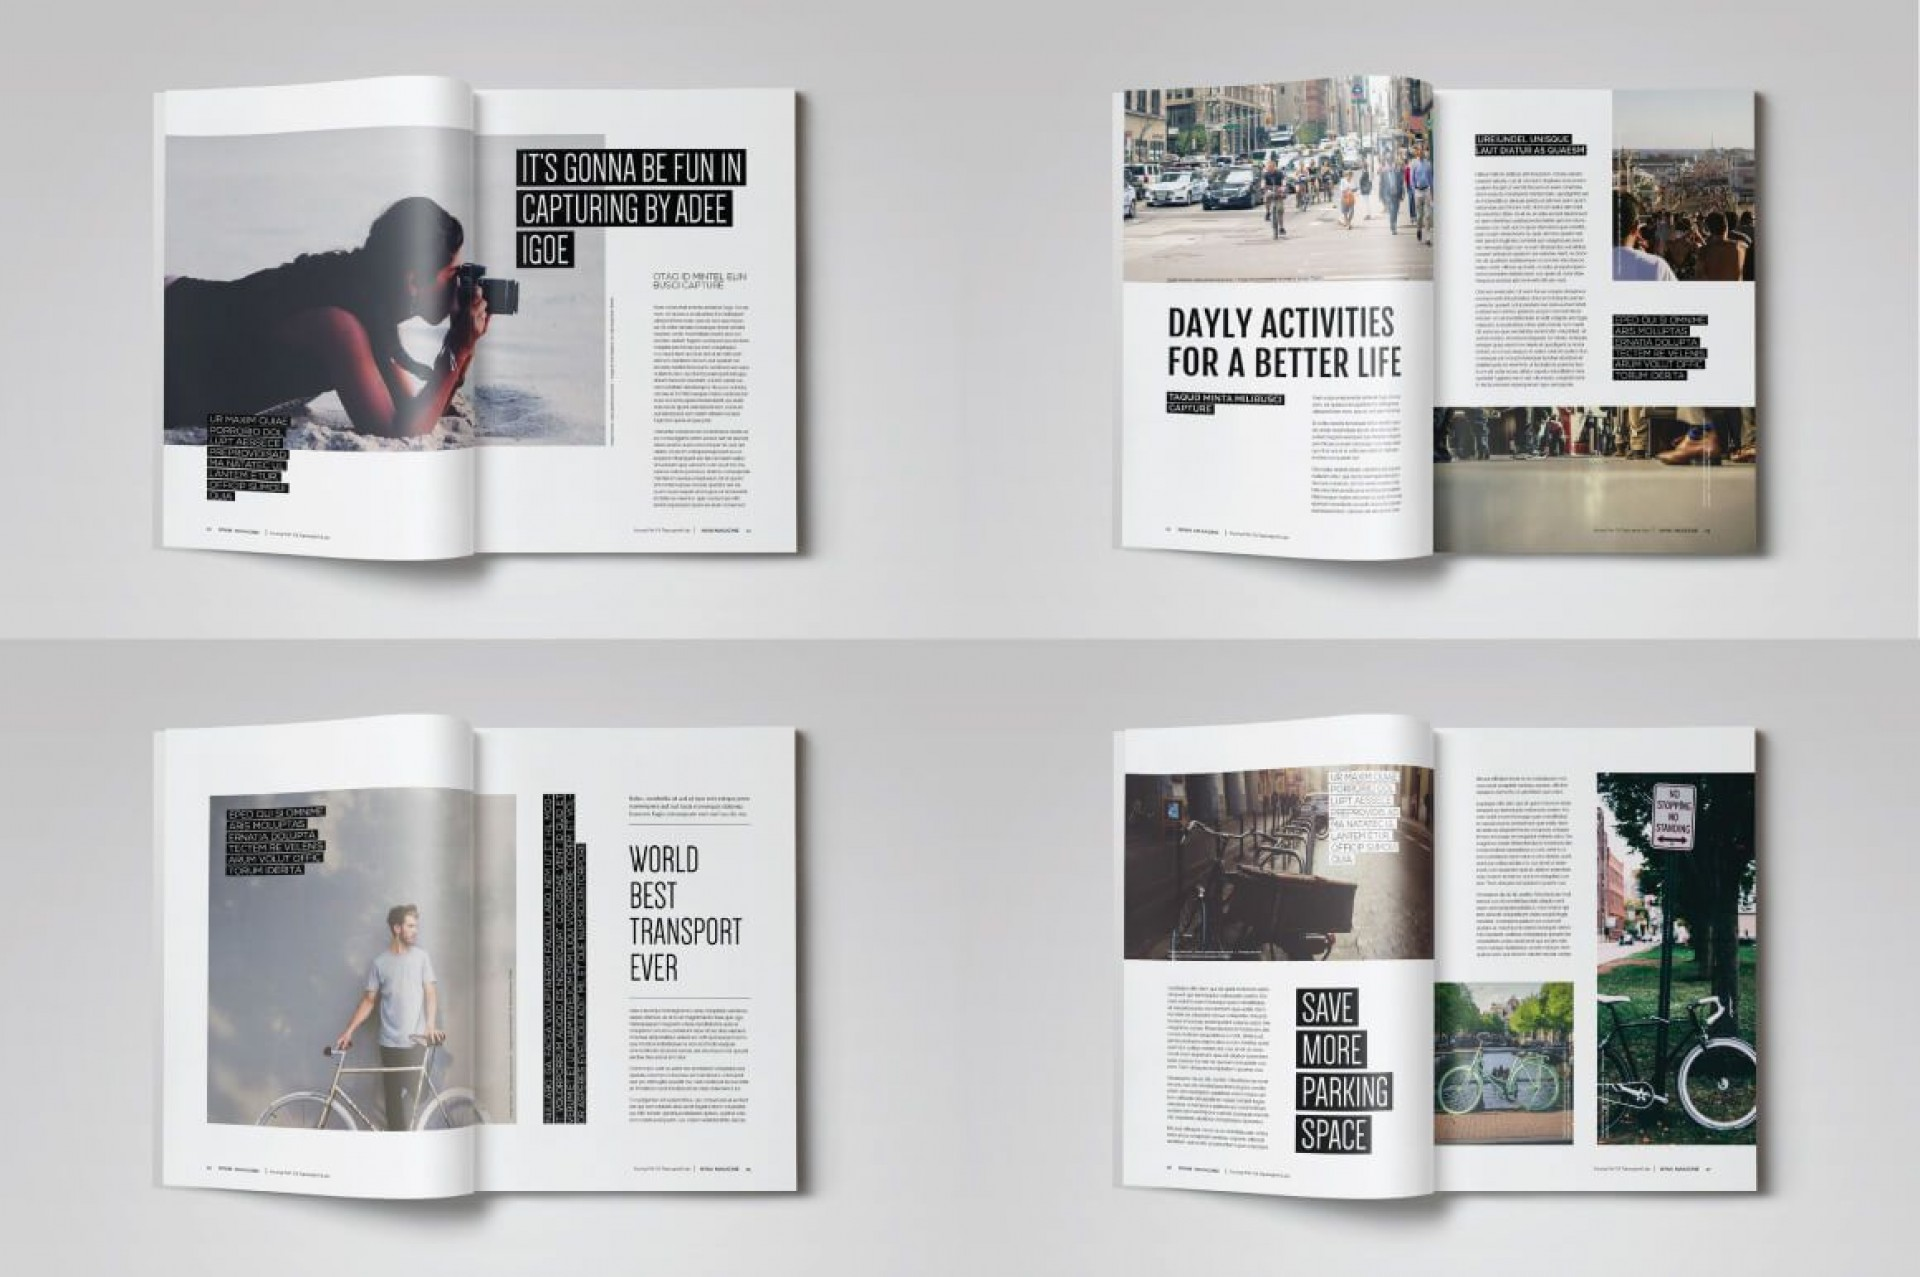 004 Stupendou Free Magazine Layout Template High Resolution  Templates For Word Microsoft Powerpoint1920